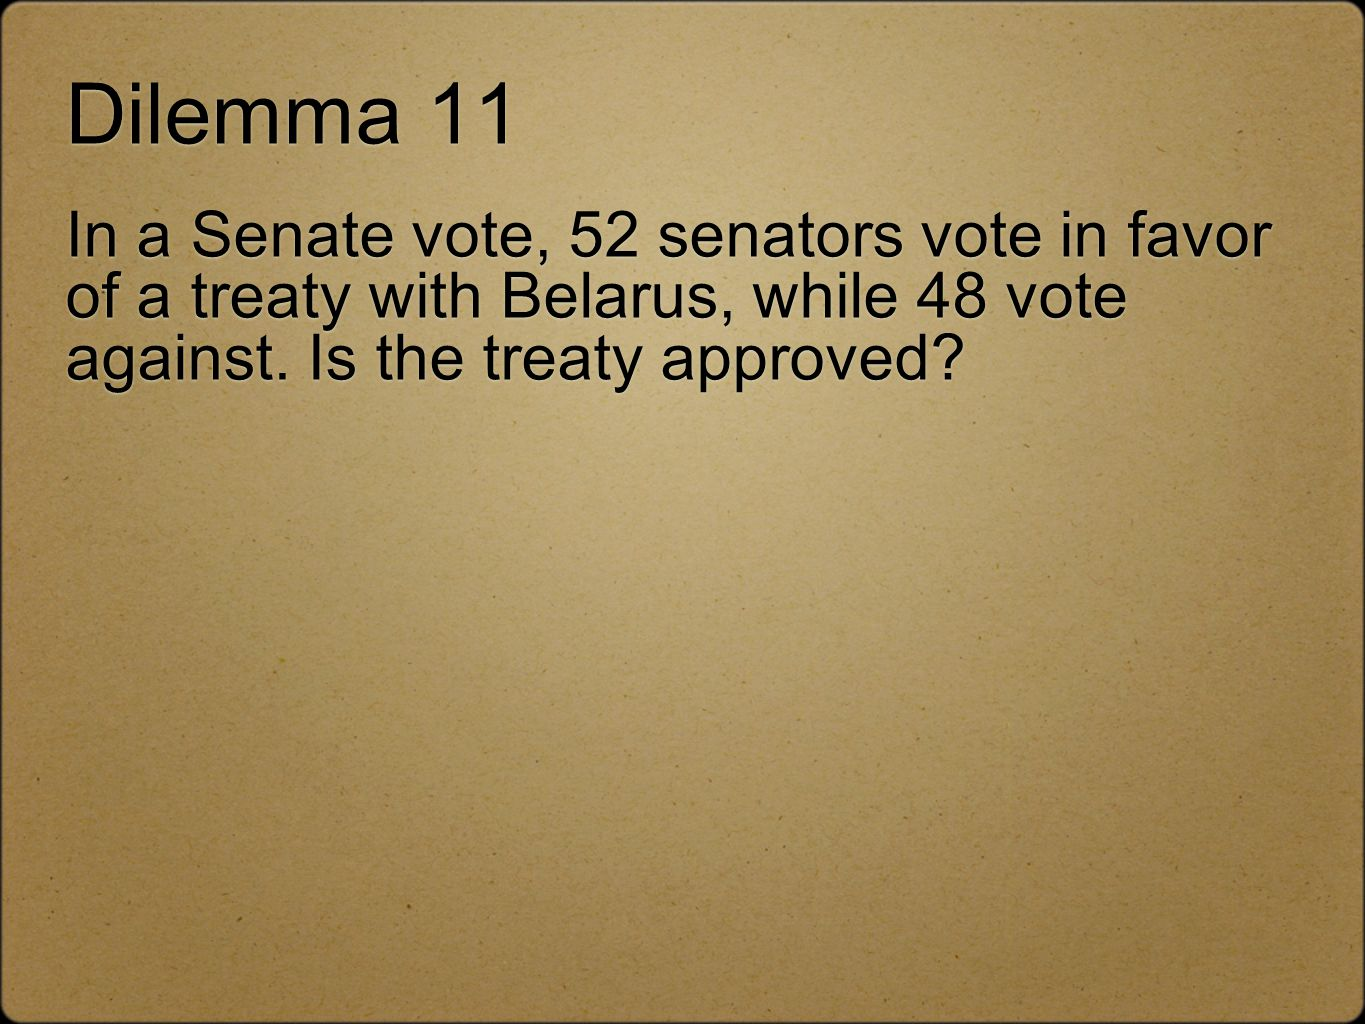 Dilemma 11 In a Senate vote, 52 senators vote in favor of a treaty with Belarus, while 48 vote against. Is the treaty approved?